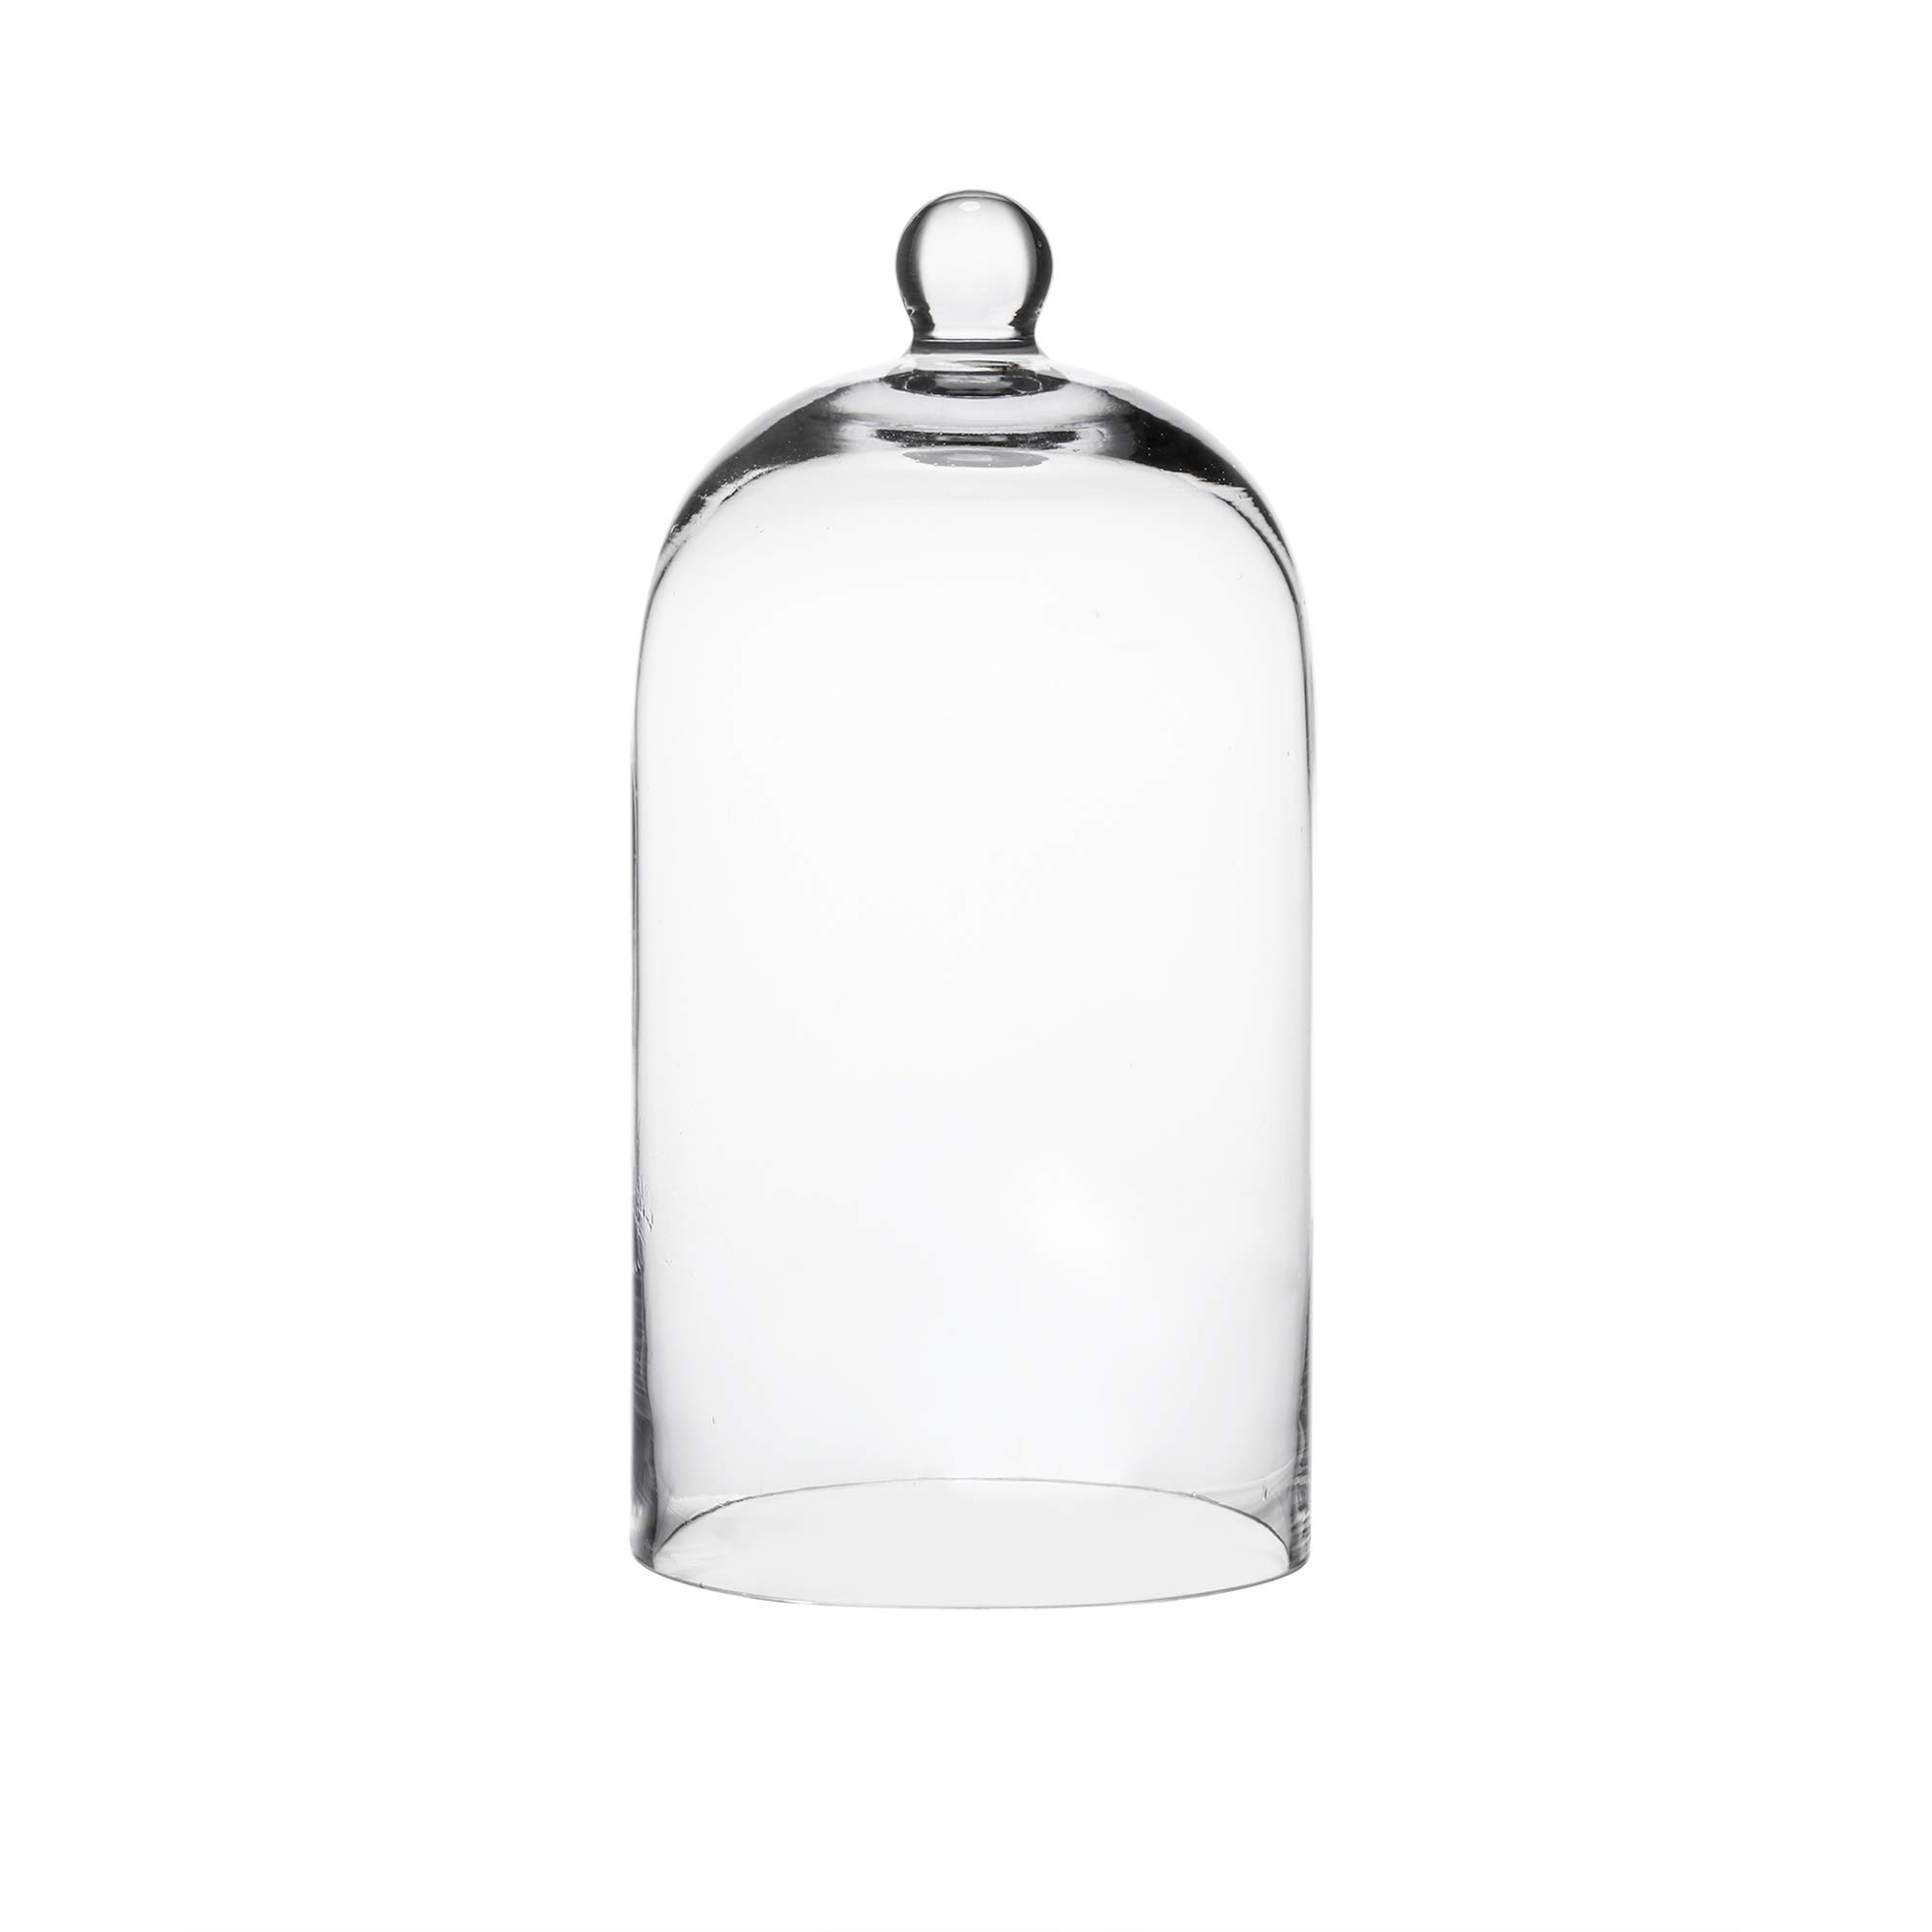 Whole Housewares Clear Glass Cloche Bell Jar - Glass Display Dome by Whole Housewares